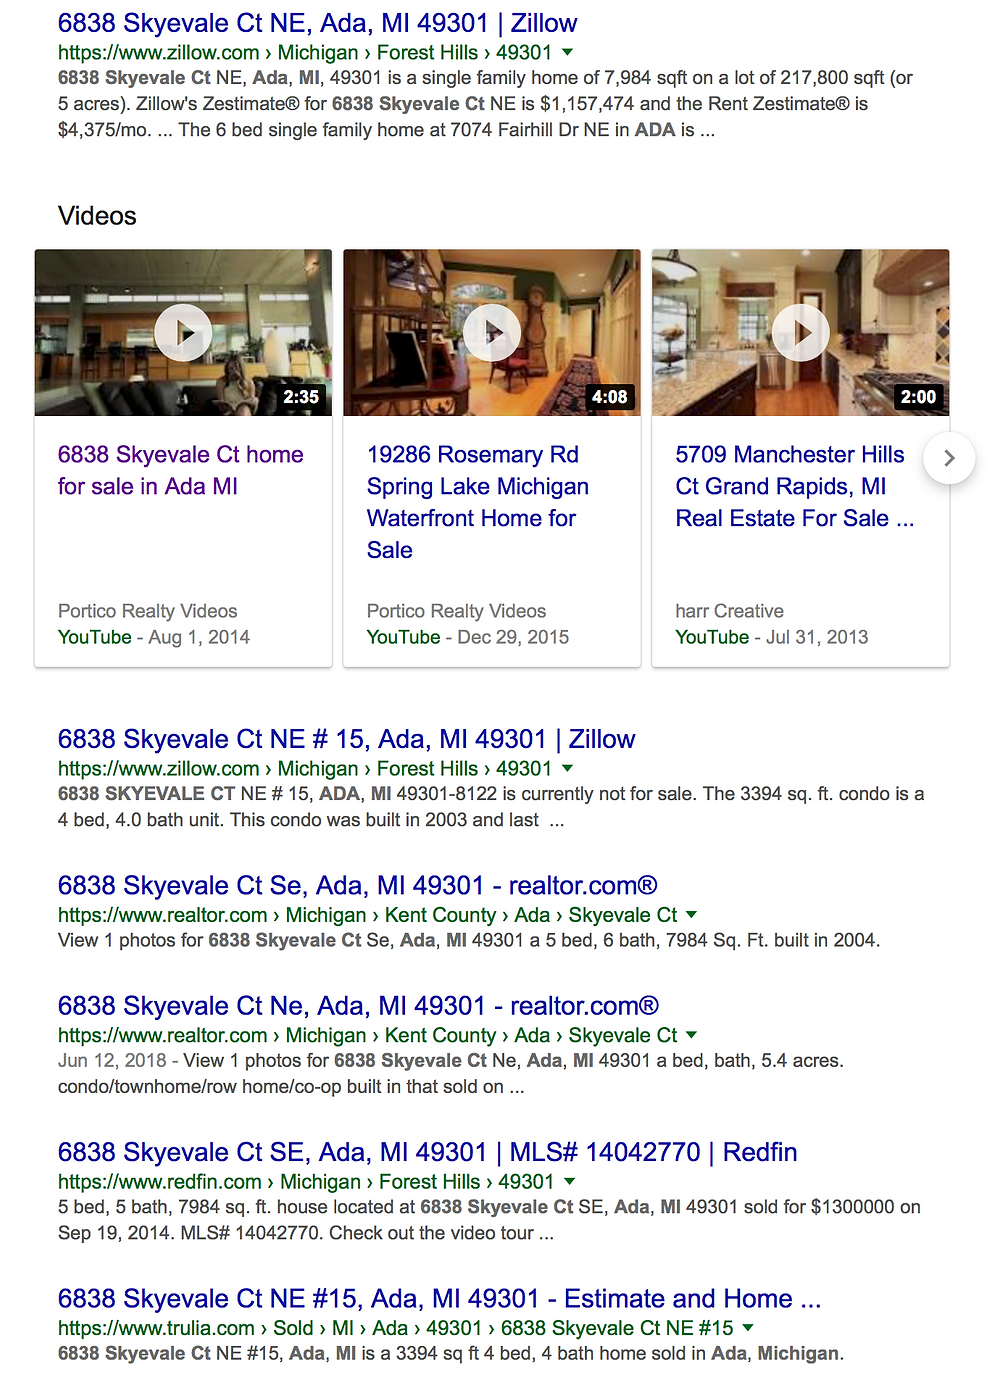 Screenshot of Real Estate Video Production in a Google Search